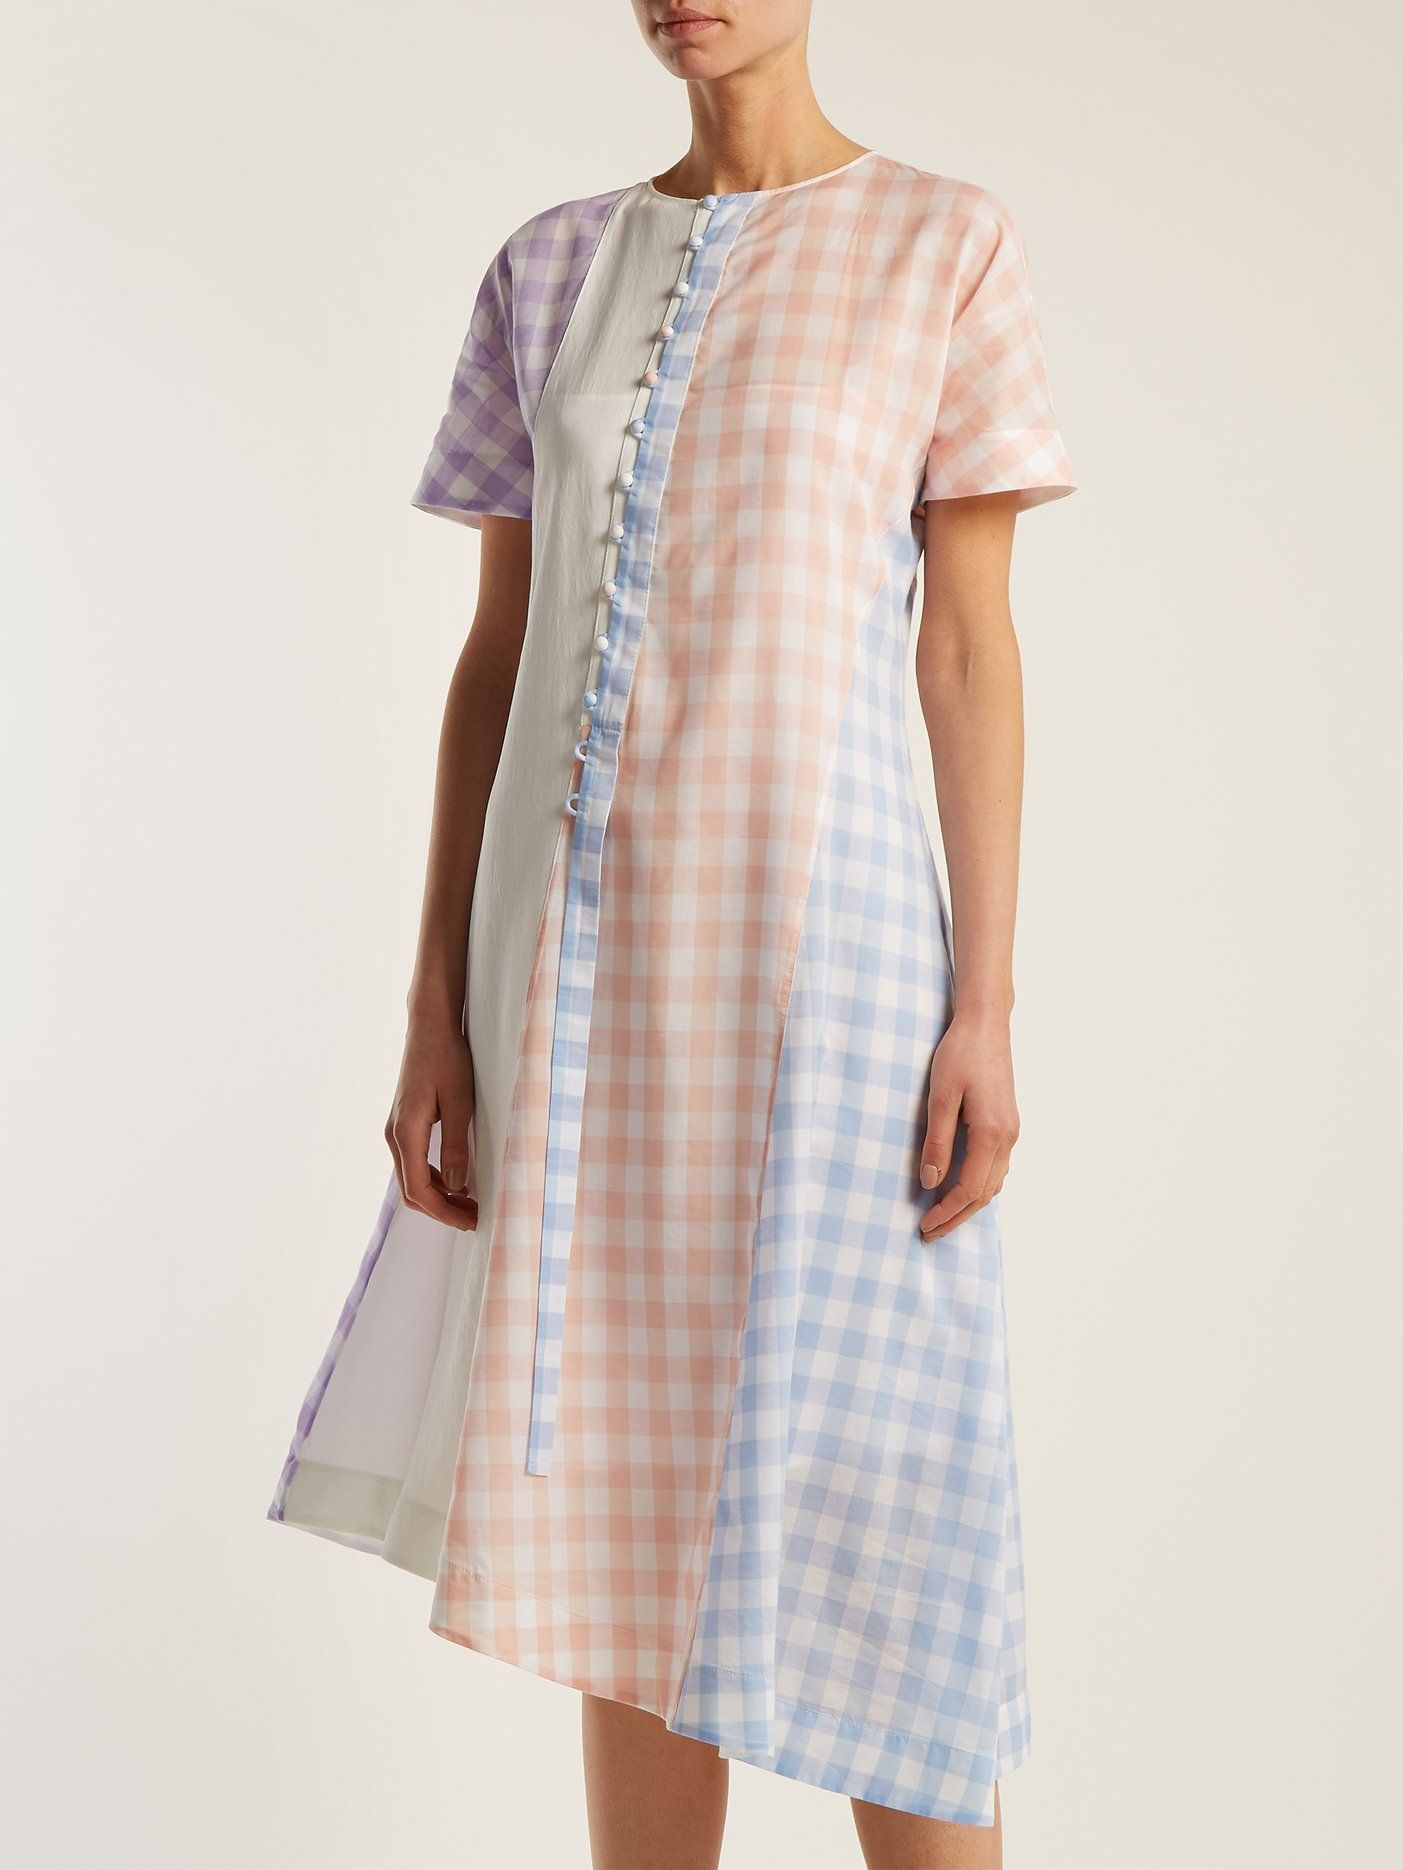 Gingham cotton-blend dress Loewe S8IvyNDftH